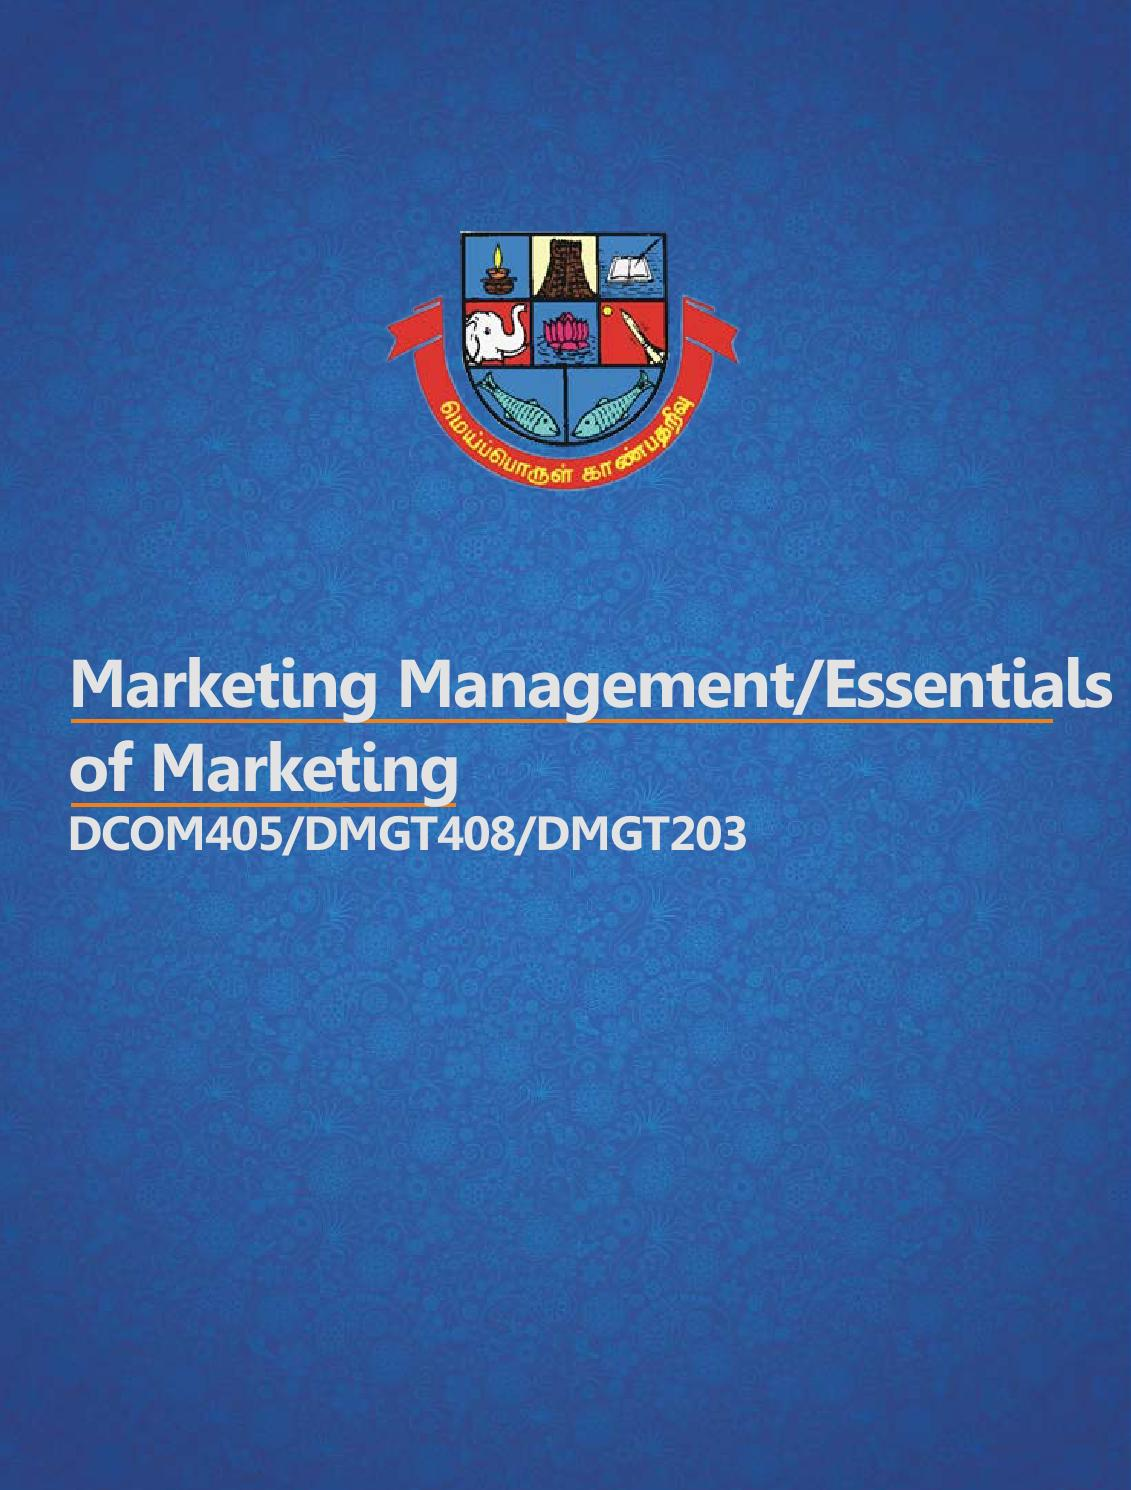 Dcom405 Dmgt408 Marketing Management Dmgt203 Essentials Of Locklock Seasoning Case Liquid 300ml Hte310 By Eduwing Issuu